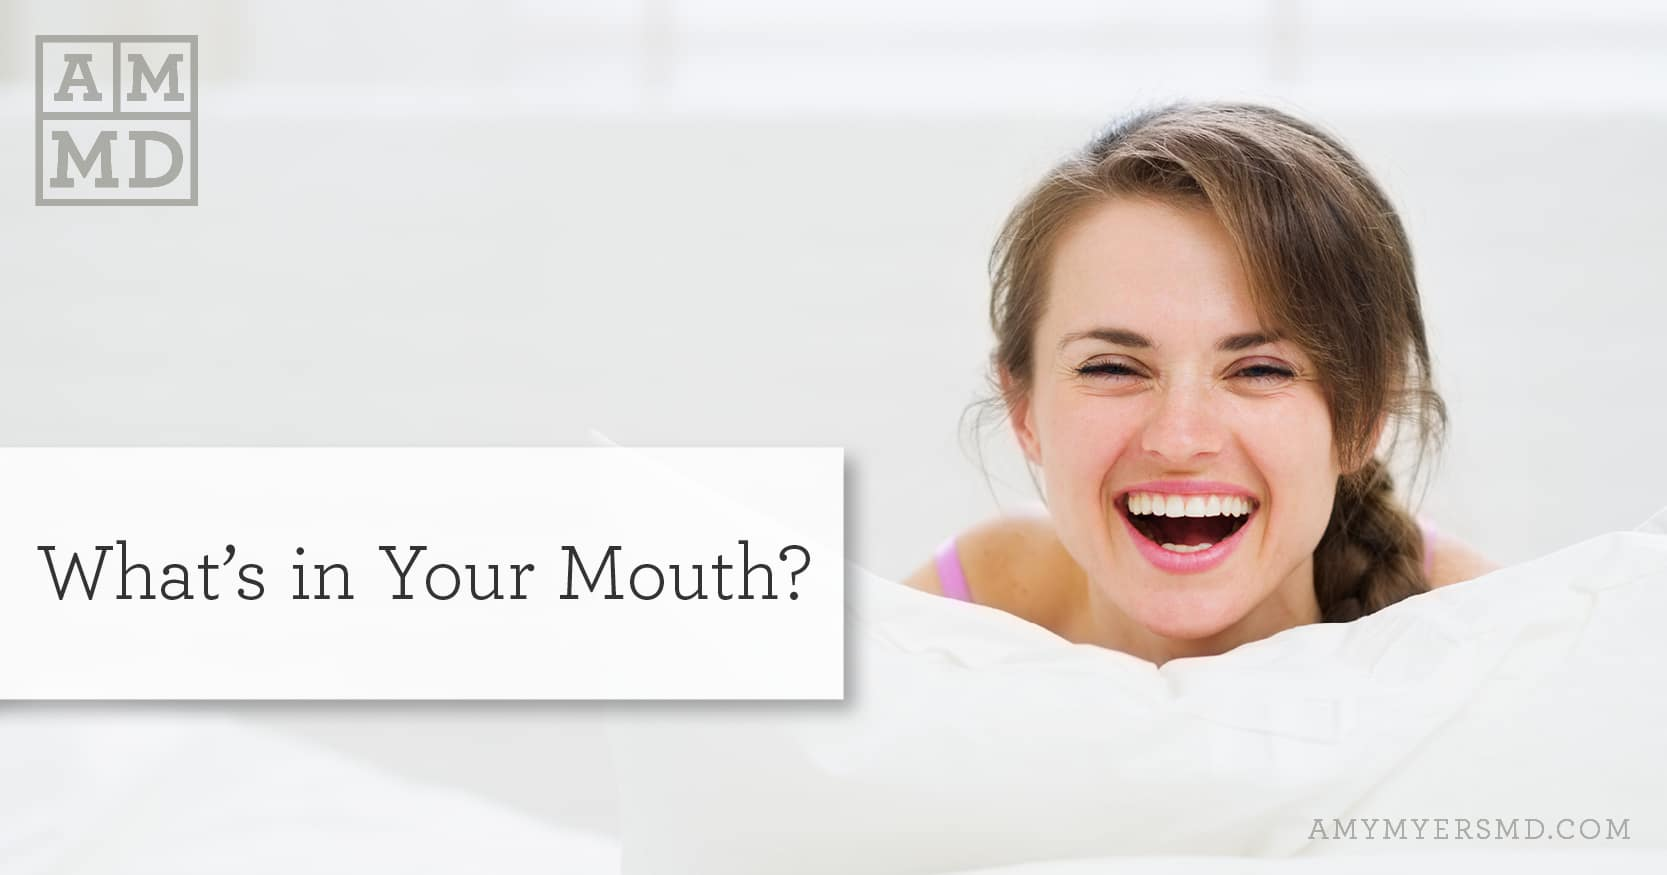 What's in Your Mouth? - Smiling woman on a pillow - Featured Image - Amy Myers MD